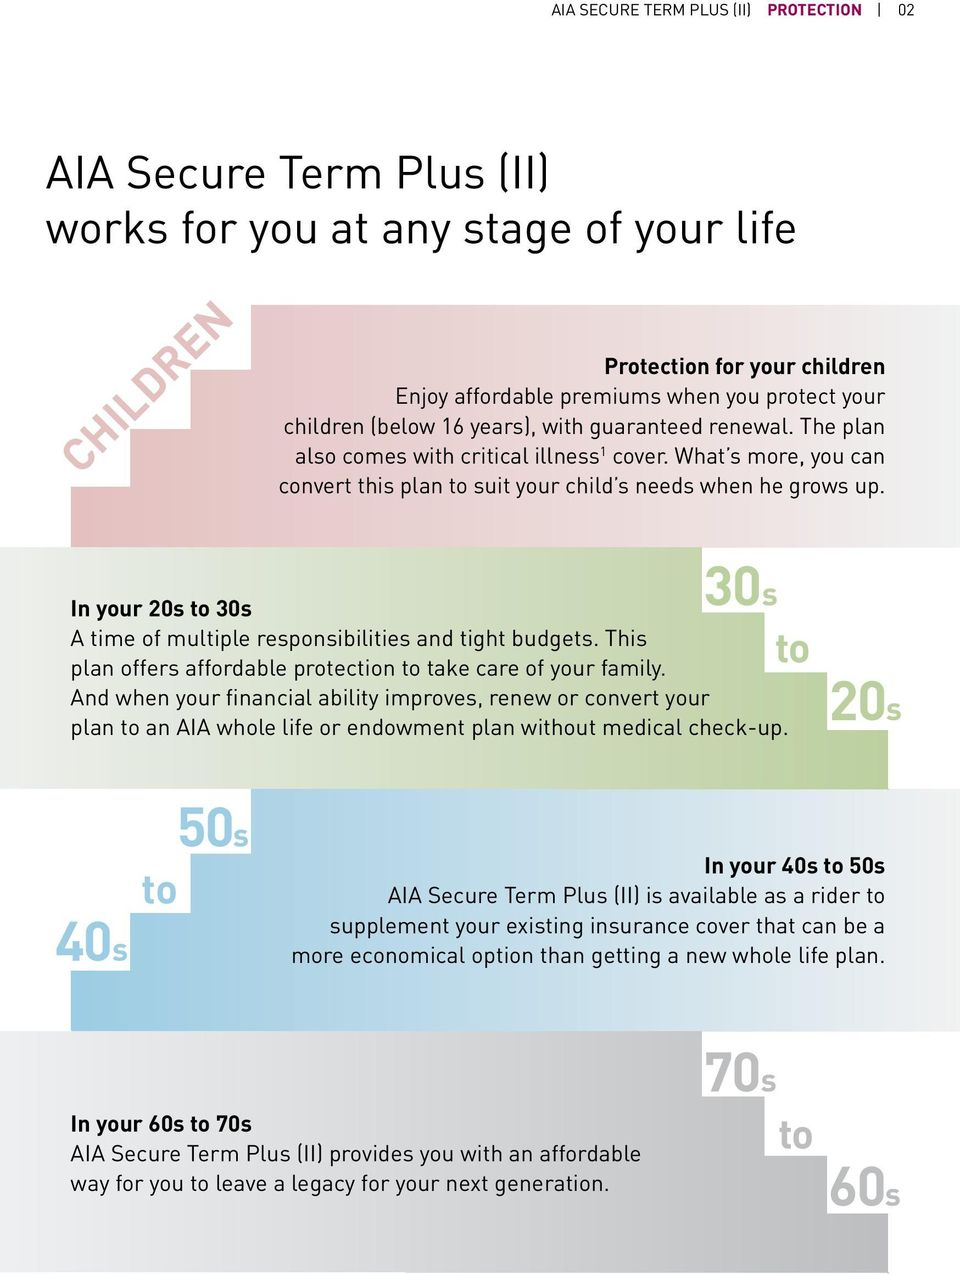 30s to In your 20s to 30s A time of multiple responsibilities and tight budgets. This plan offers affordable protection to take care of your family.